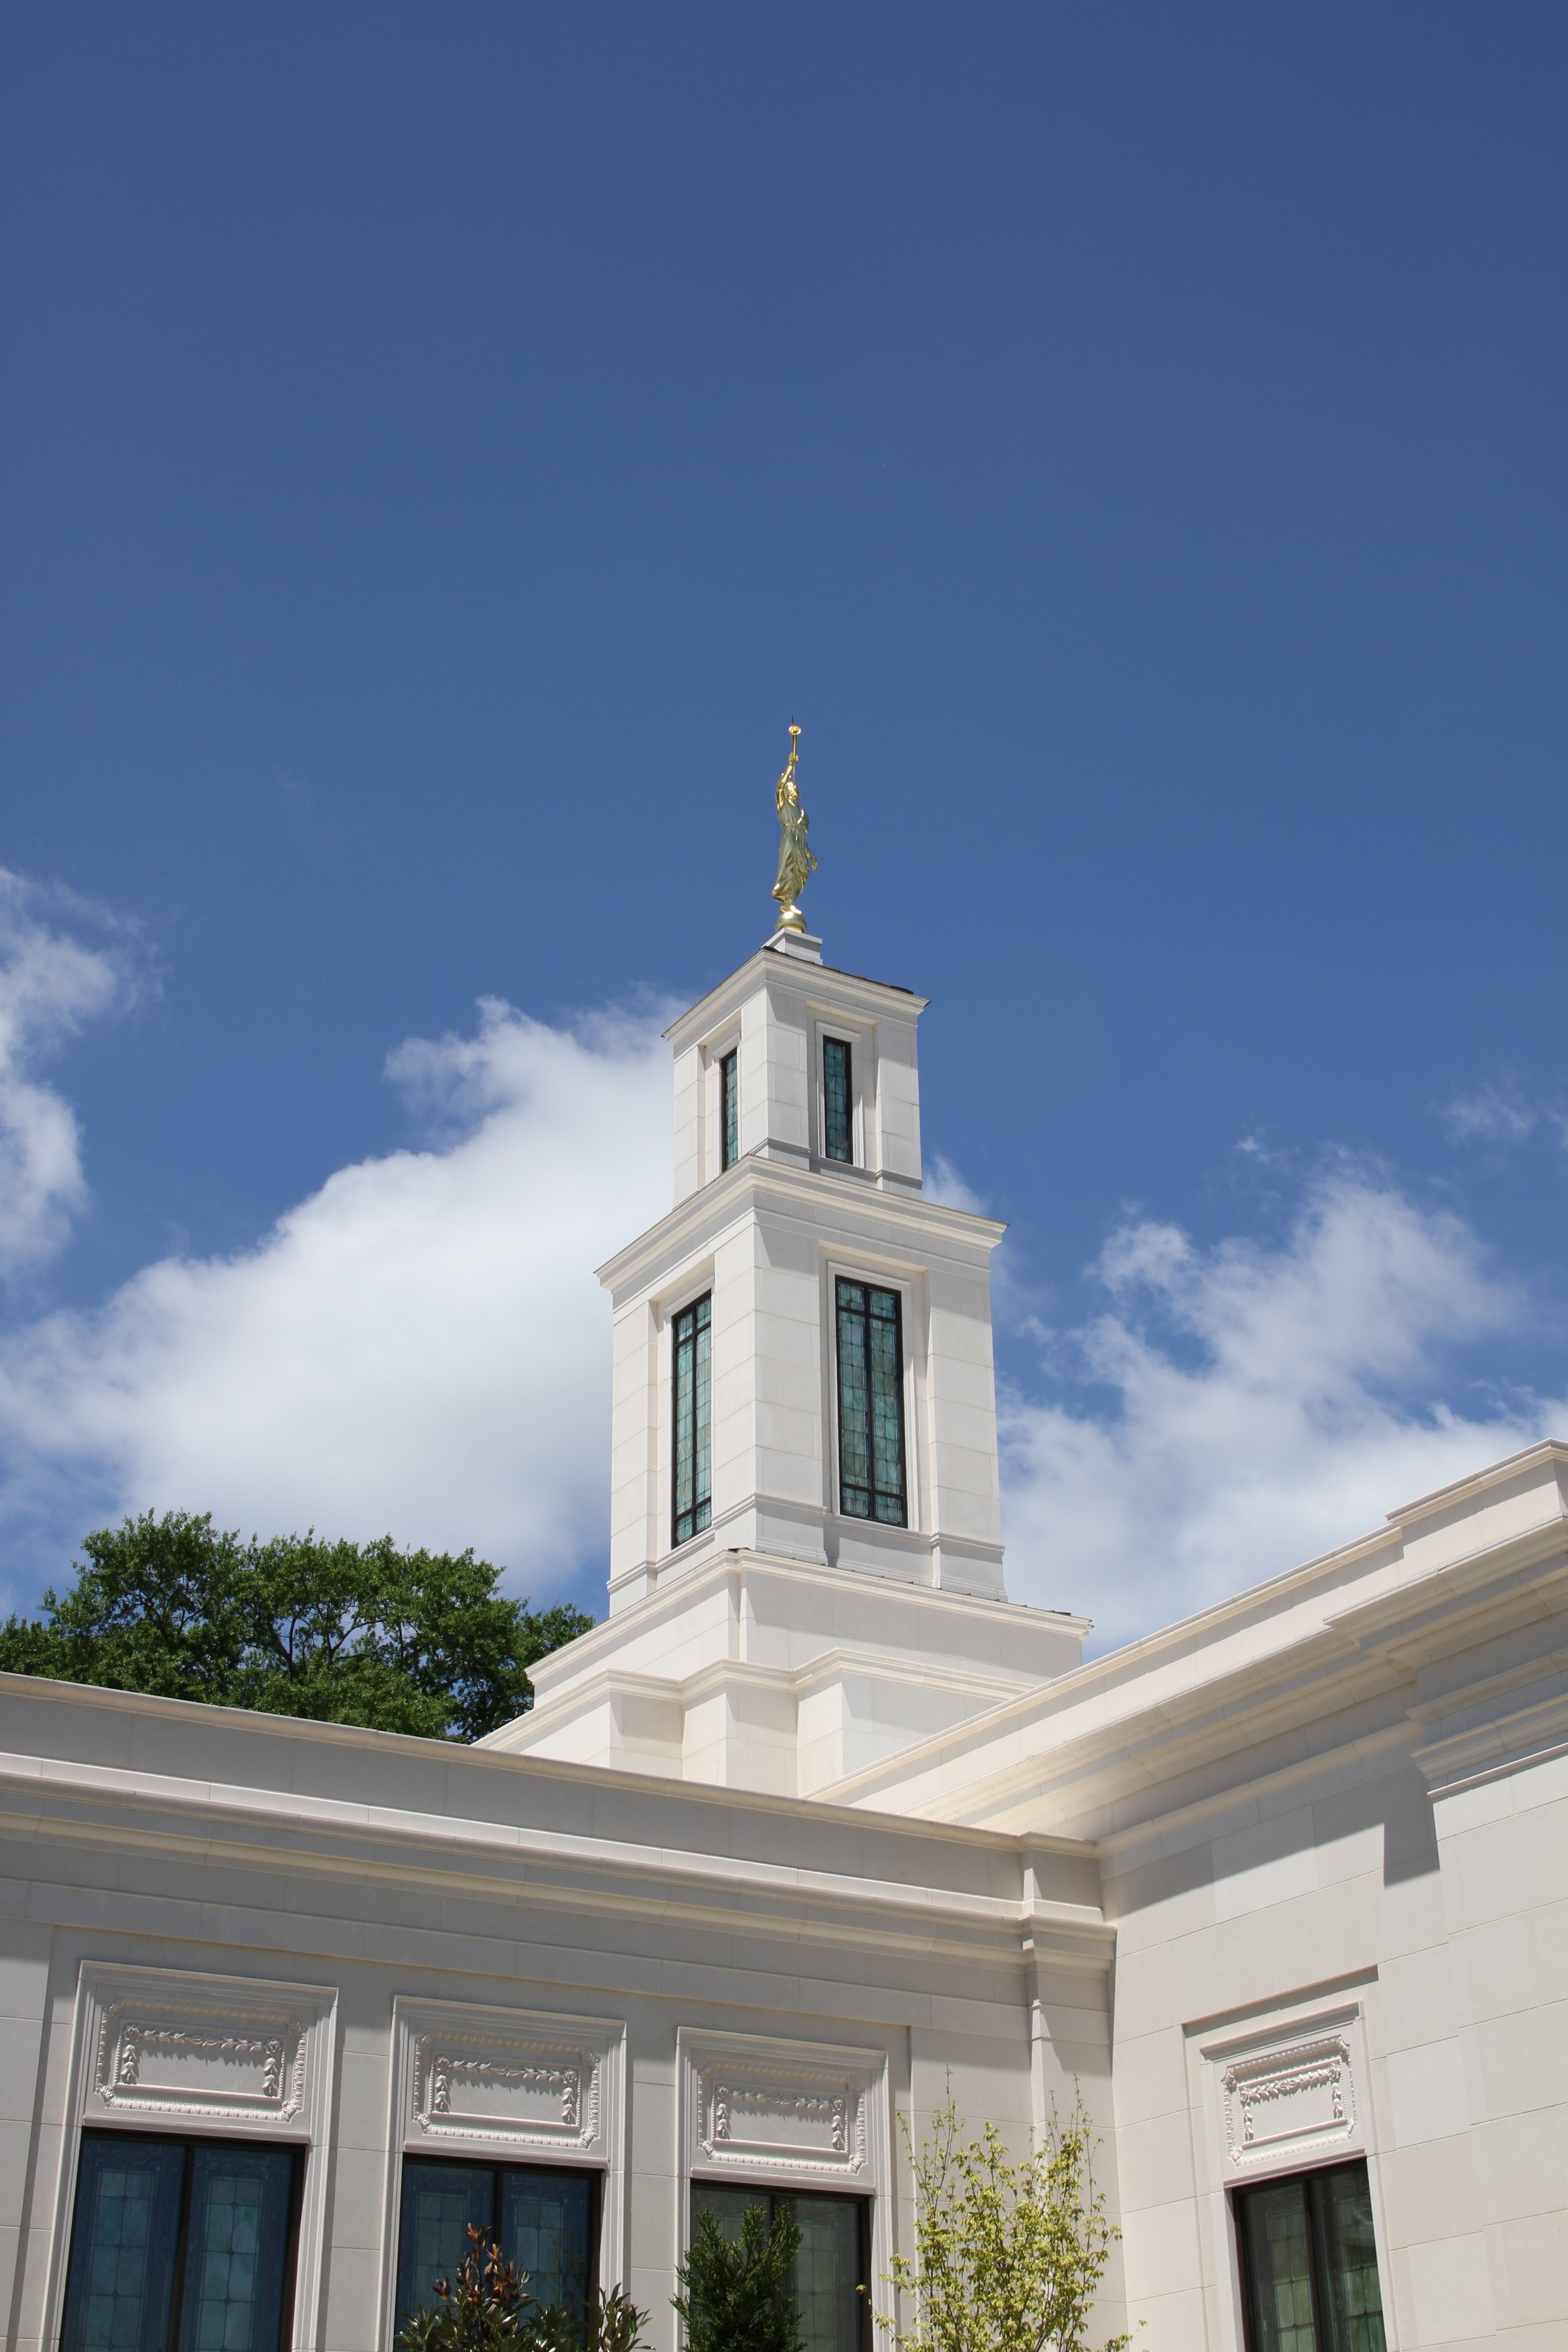 The Memphis Tennessee Temple on May 5, 2019, after it was rededicated by Elder Jeffrey R. Holland.